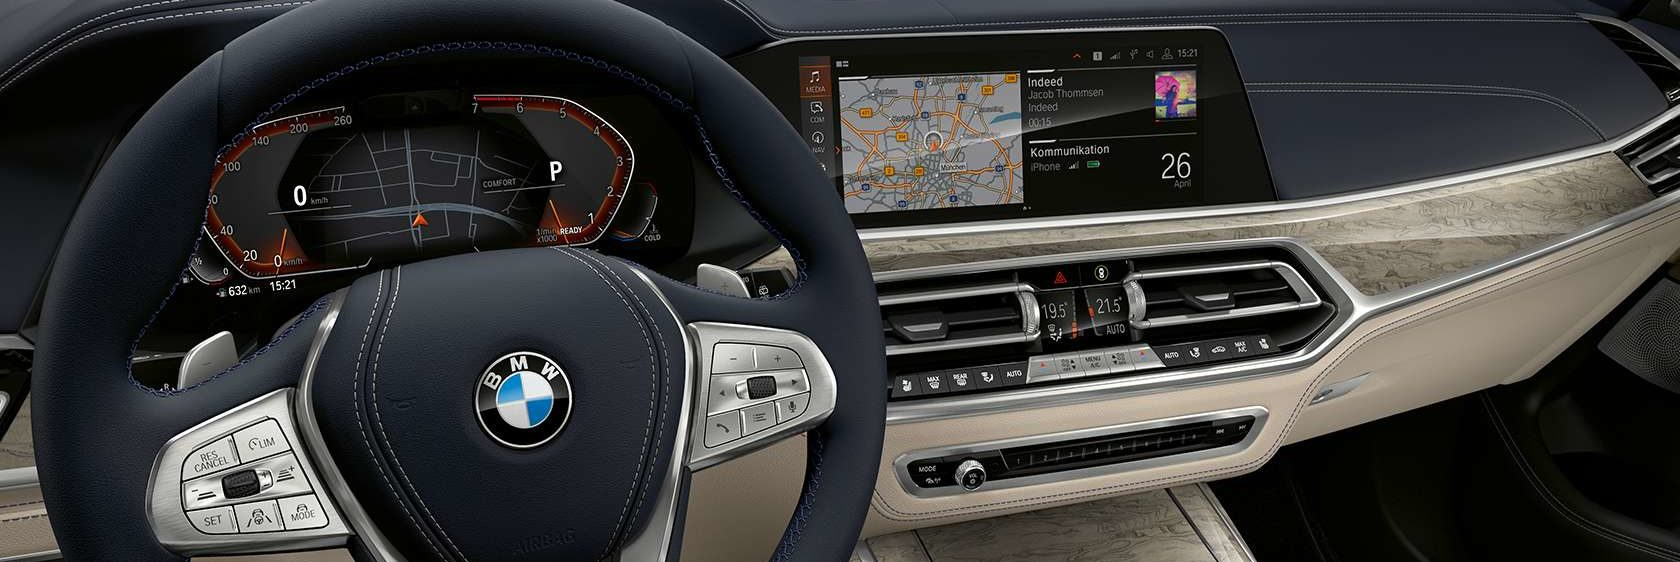 BMW Driver Assistant in BMW X7